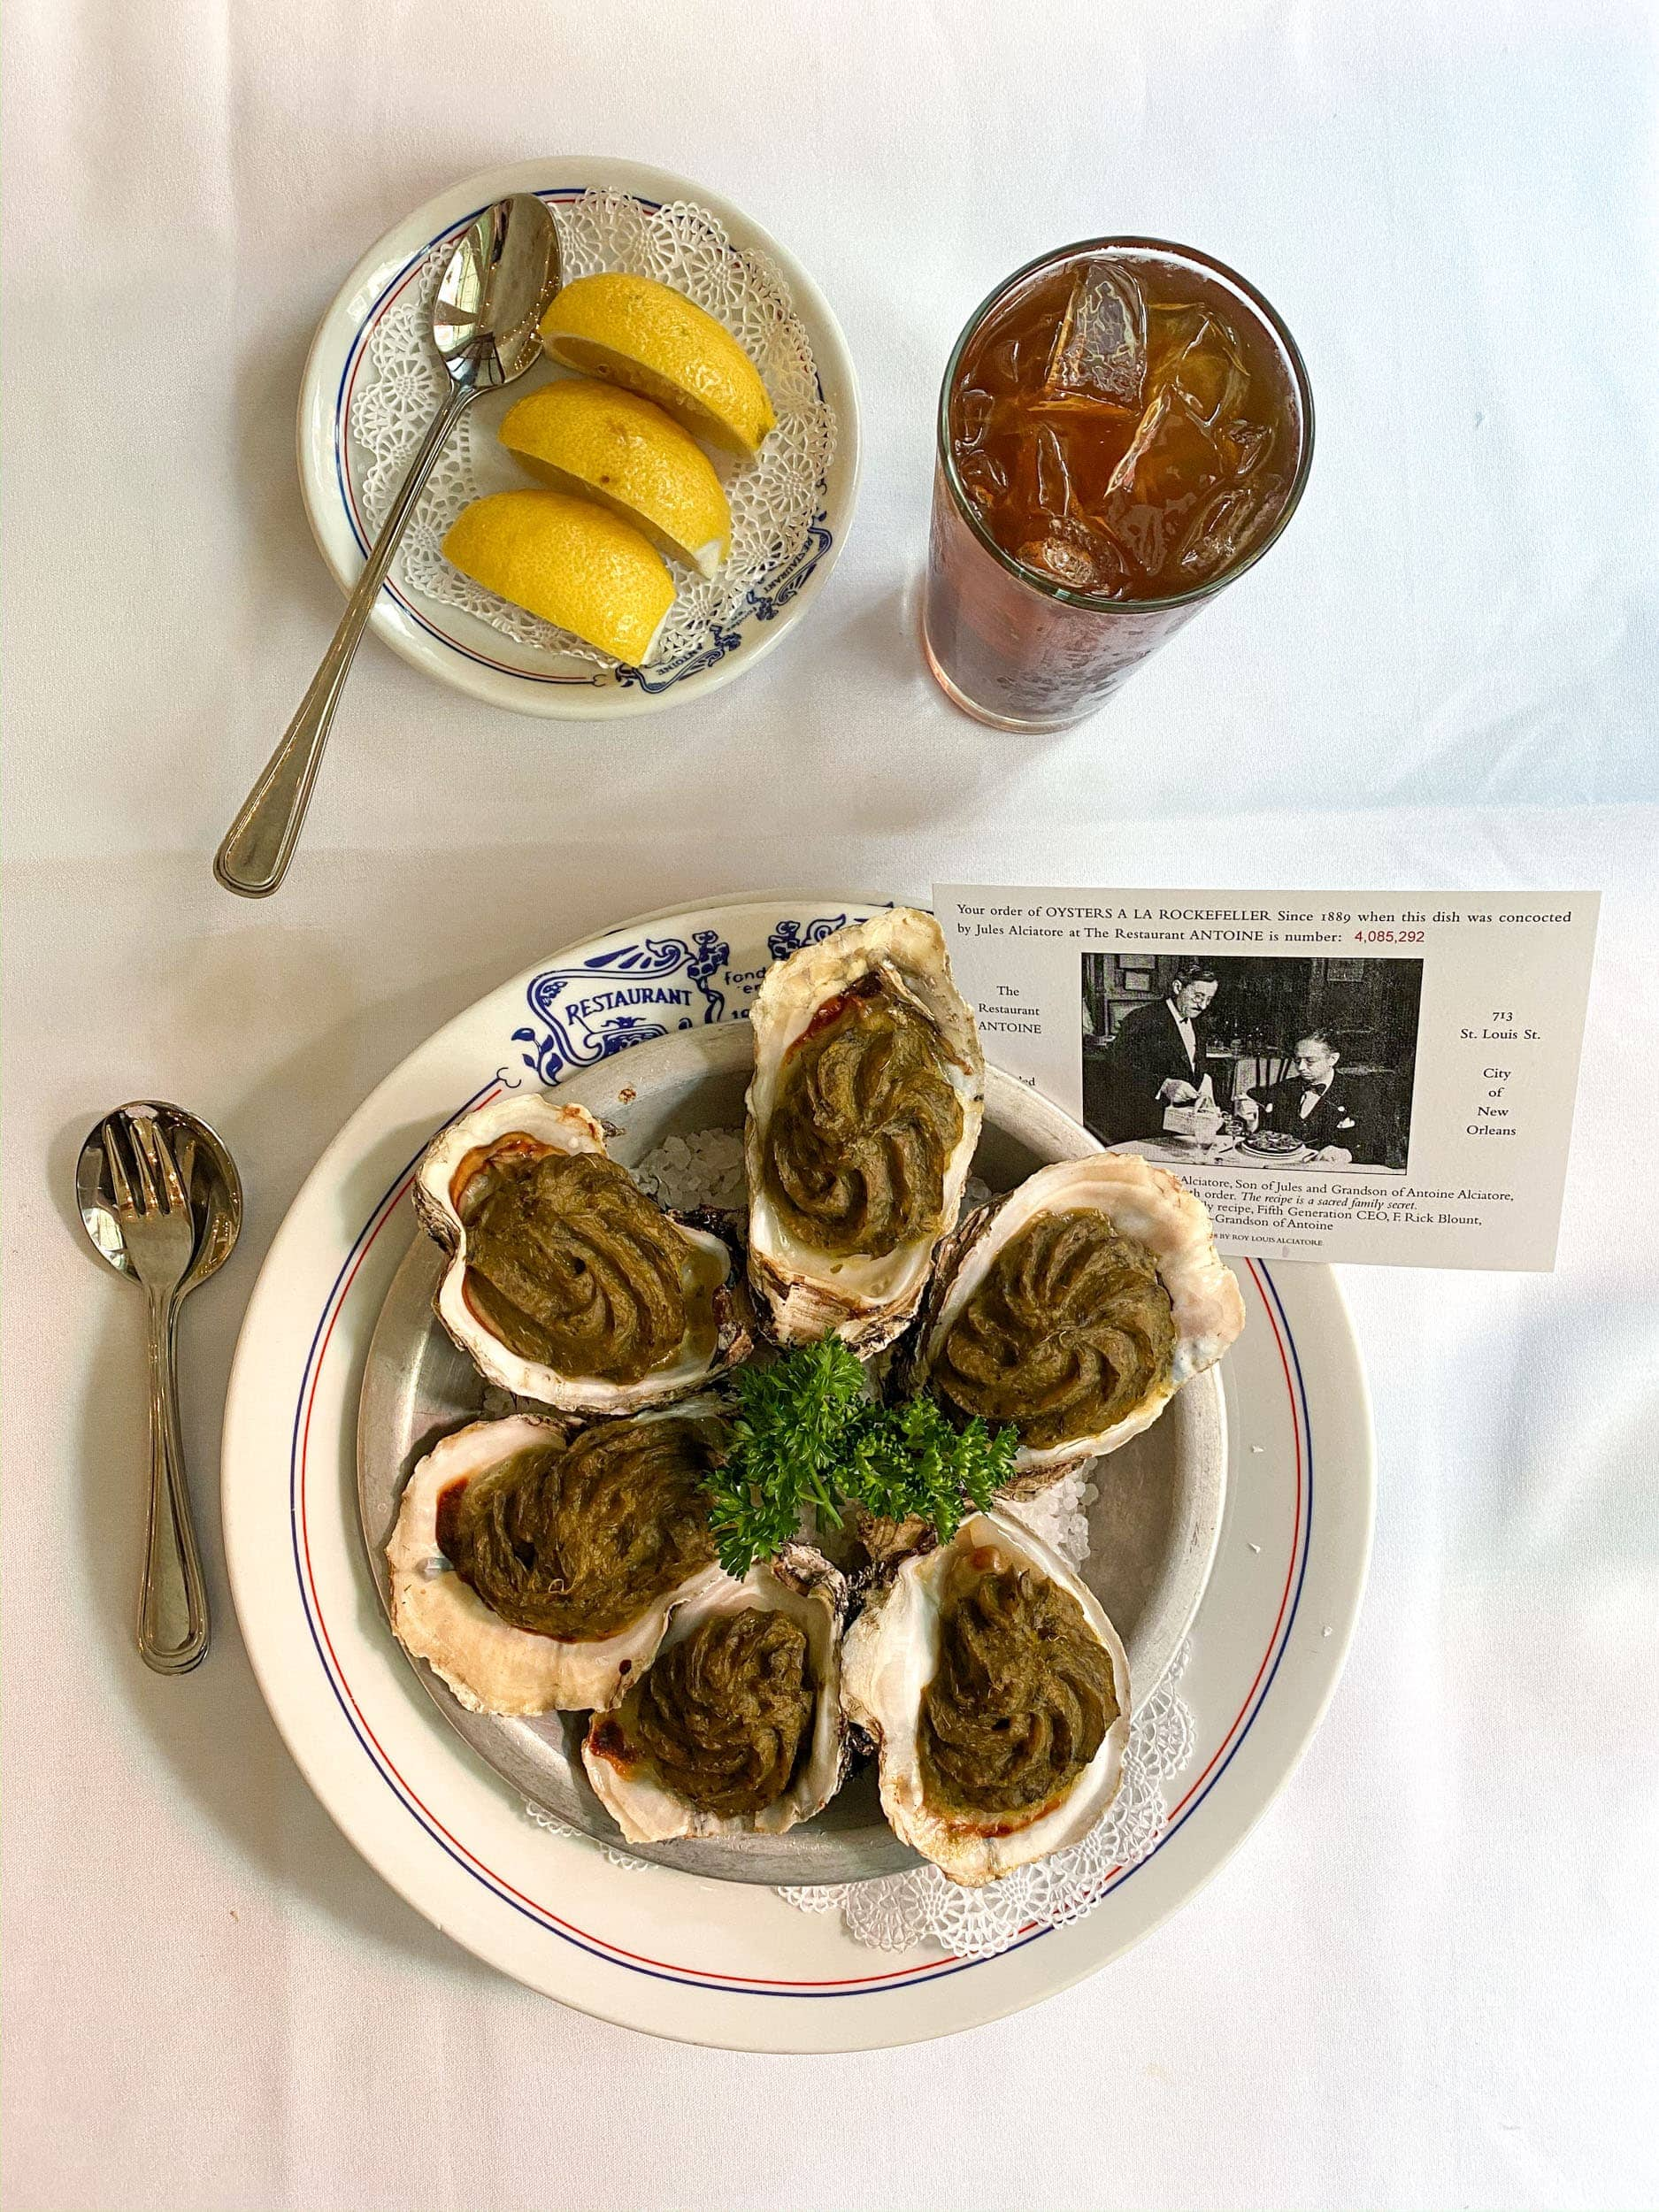 Oysters Rockefeller at Antoine's New Orleans